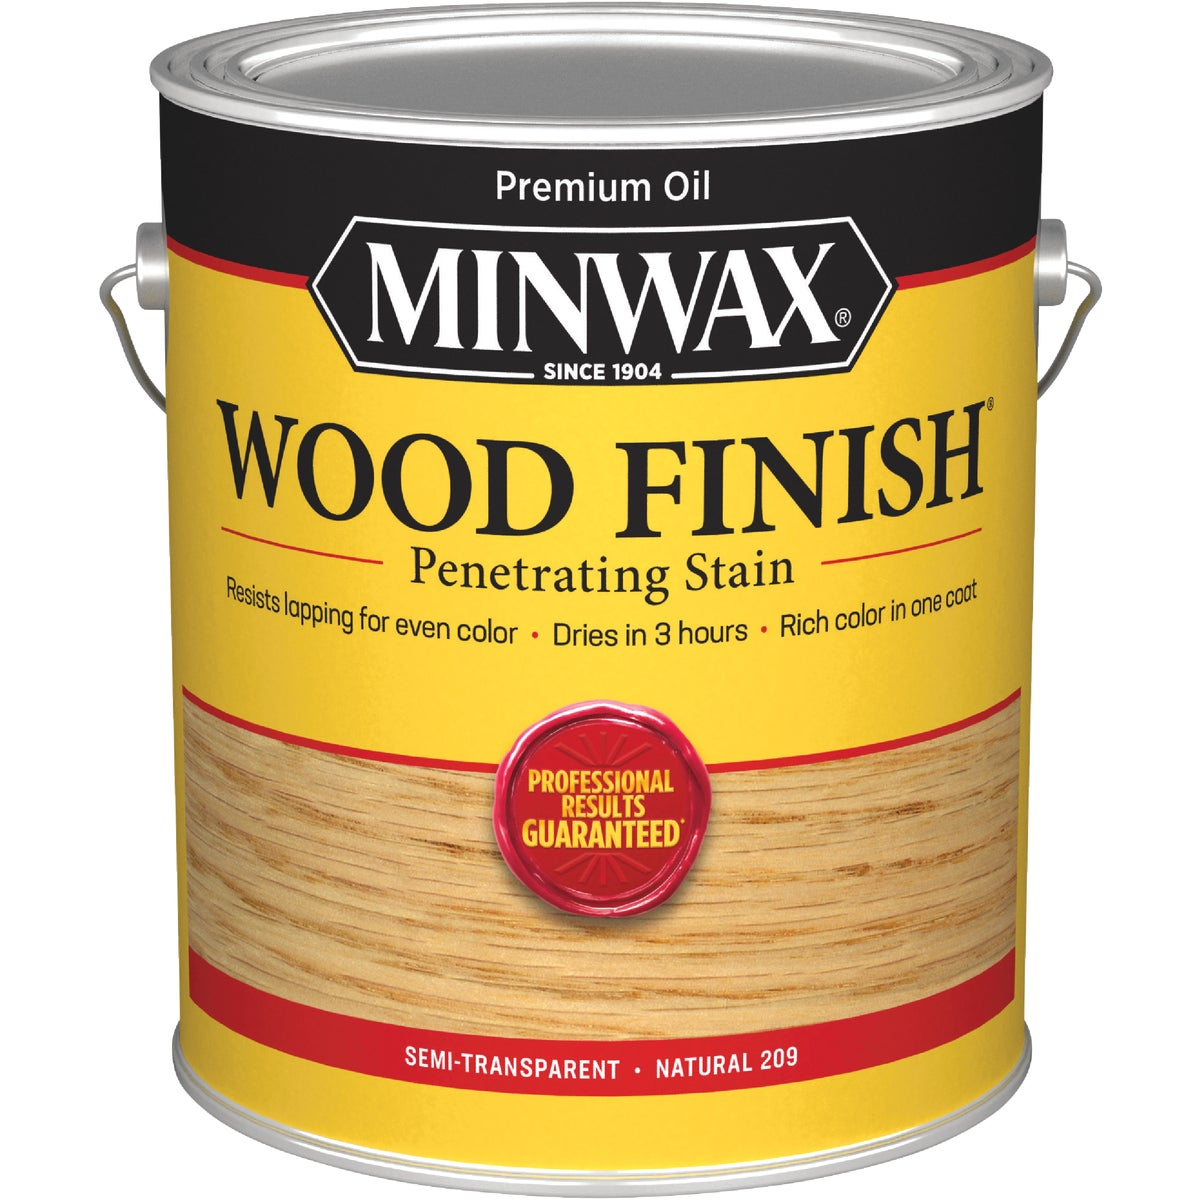 VOC NATURAL WOOD STAIN - 710700000 by Minwax Company